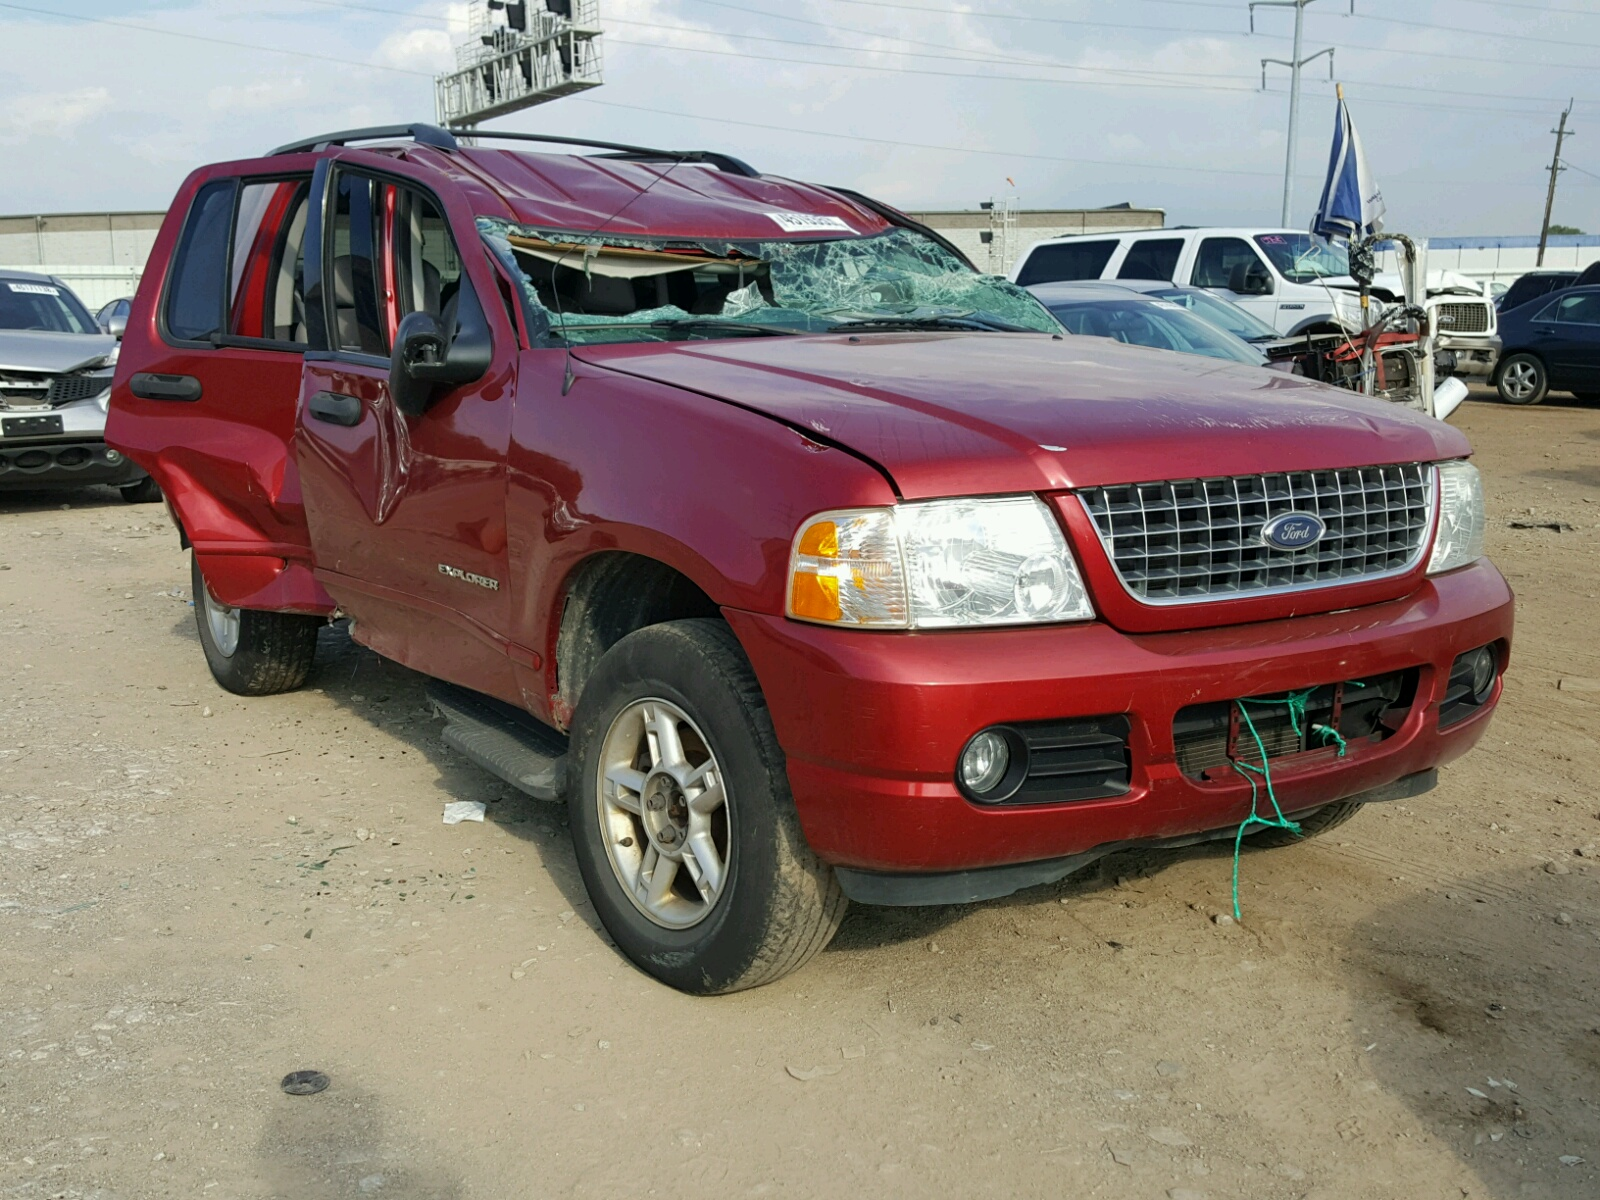 1fmzu73k04uc06284 2004 Red Ford Explorer X On Sale In Oh 2015 Escape Wiring Cdc35 40l Left View